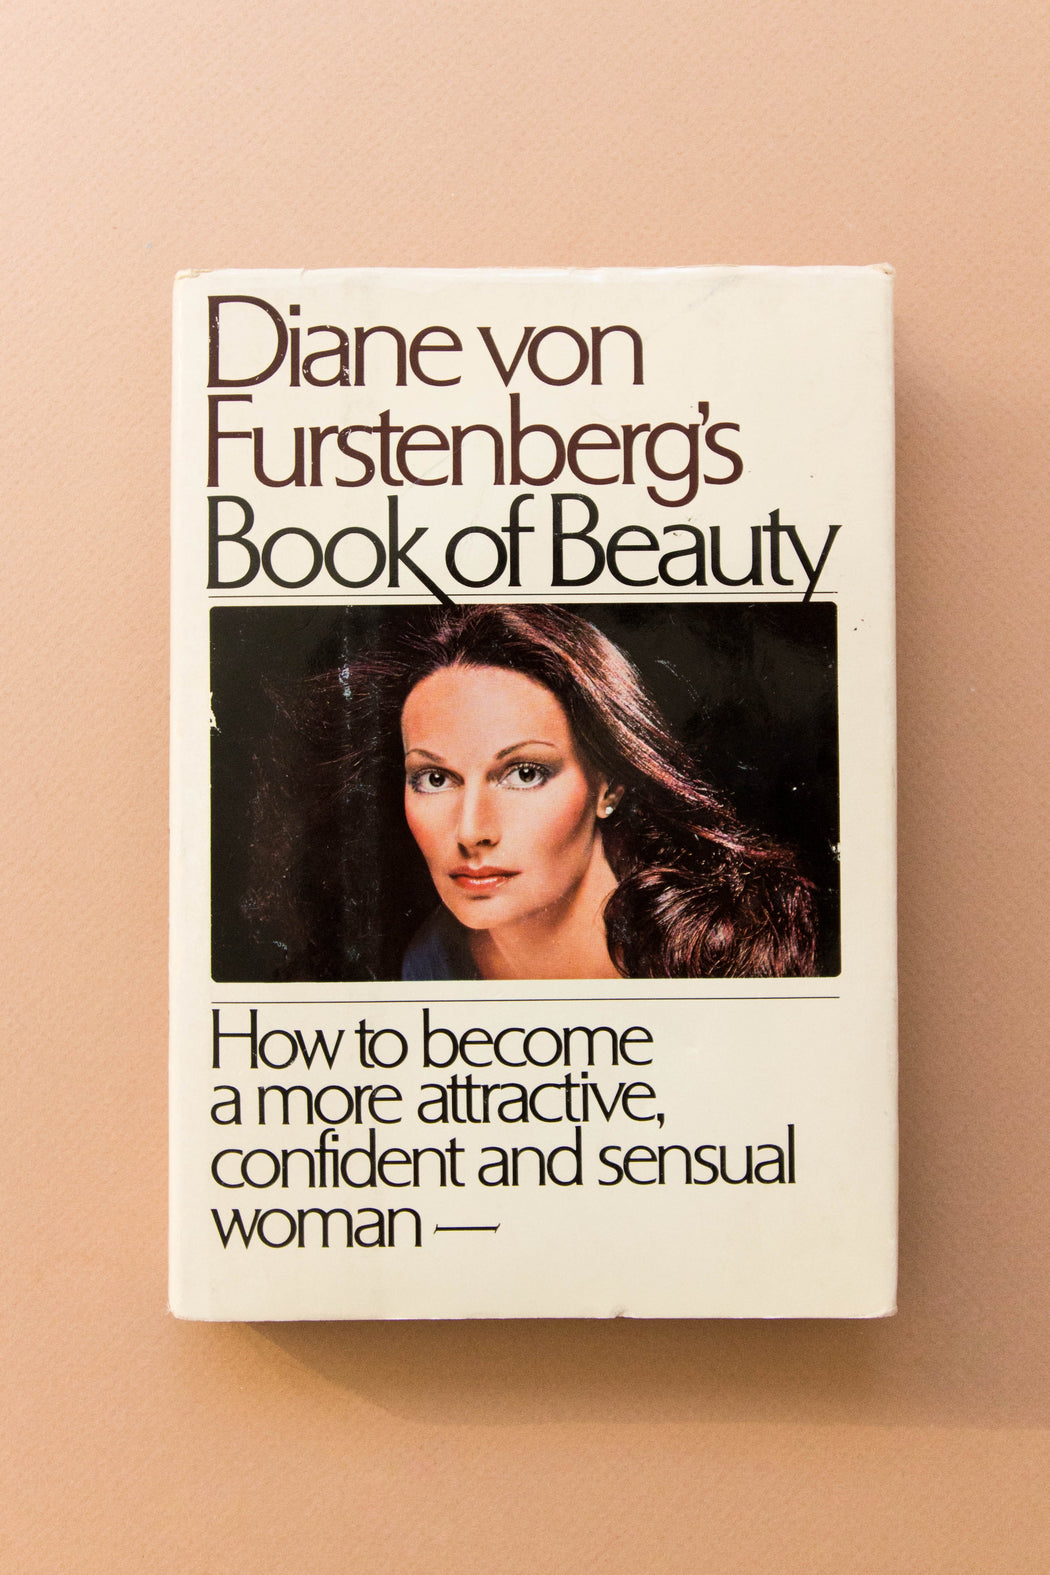 Diane von Furstenberg's Book of Beauty